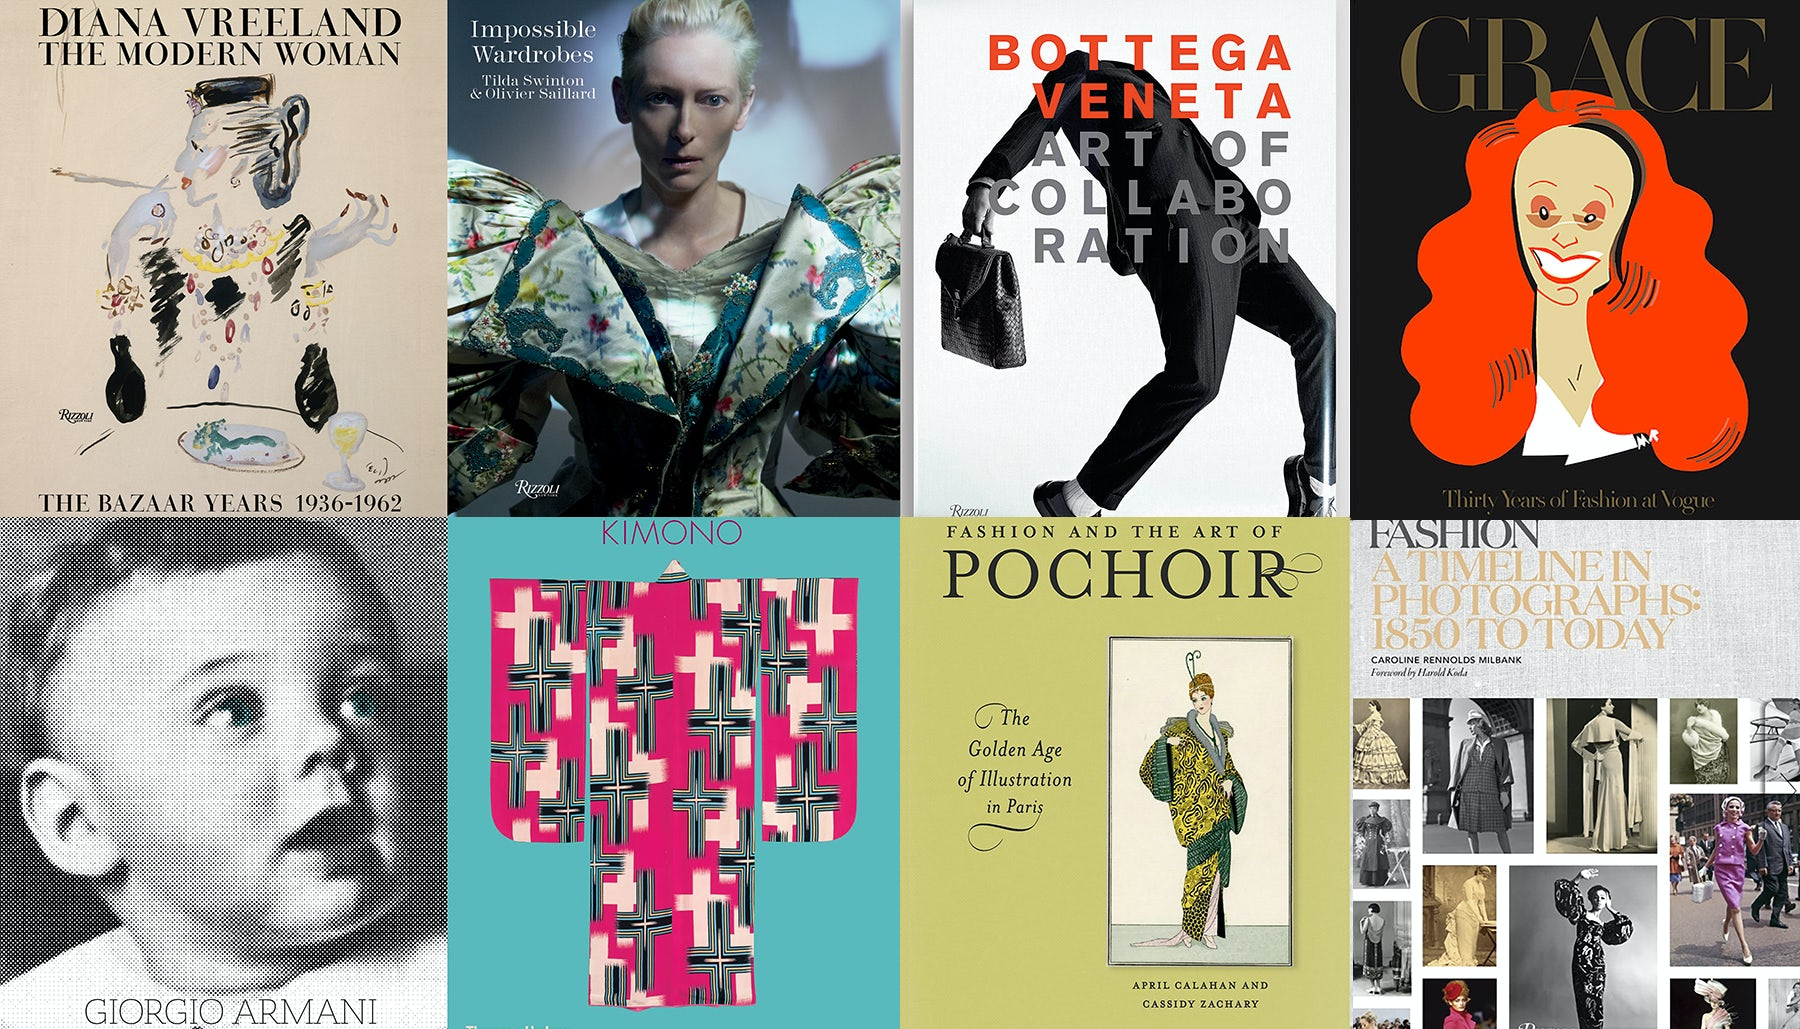 (Clockwise L - R)    Source: Diana Vreeland The Modern Woman, Impossible Wardrobes, The Art of Collaboration,  Grace: Thirty Years of Fashion at Vogue, Fashion: A Timeline in Photographs 1850 to Today, Fashion and The Art of Pochoir; Kimono: The Art And Evolution Of Japanese Fashion, Giorgio Armani   Source: Courtesy